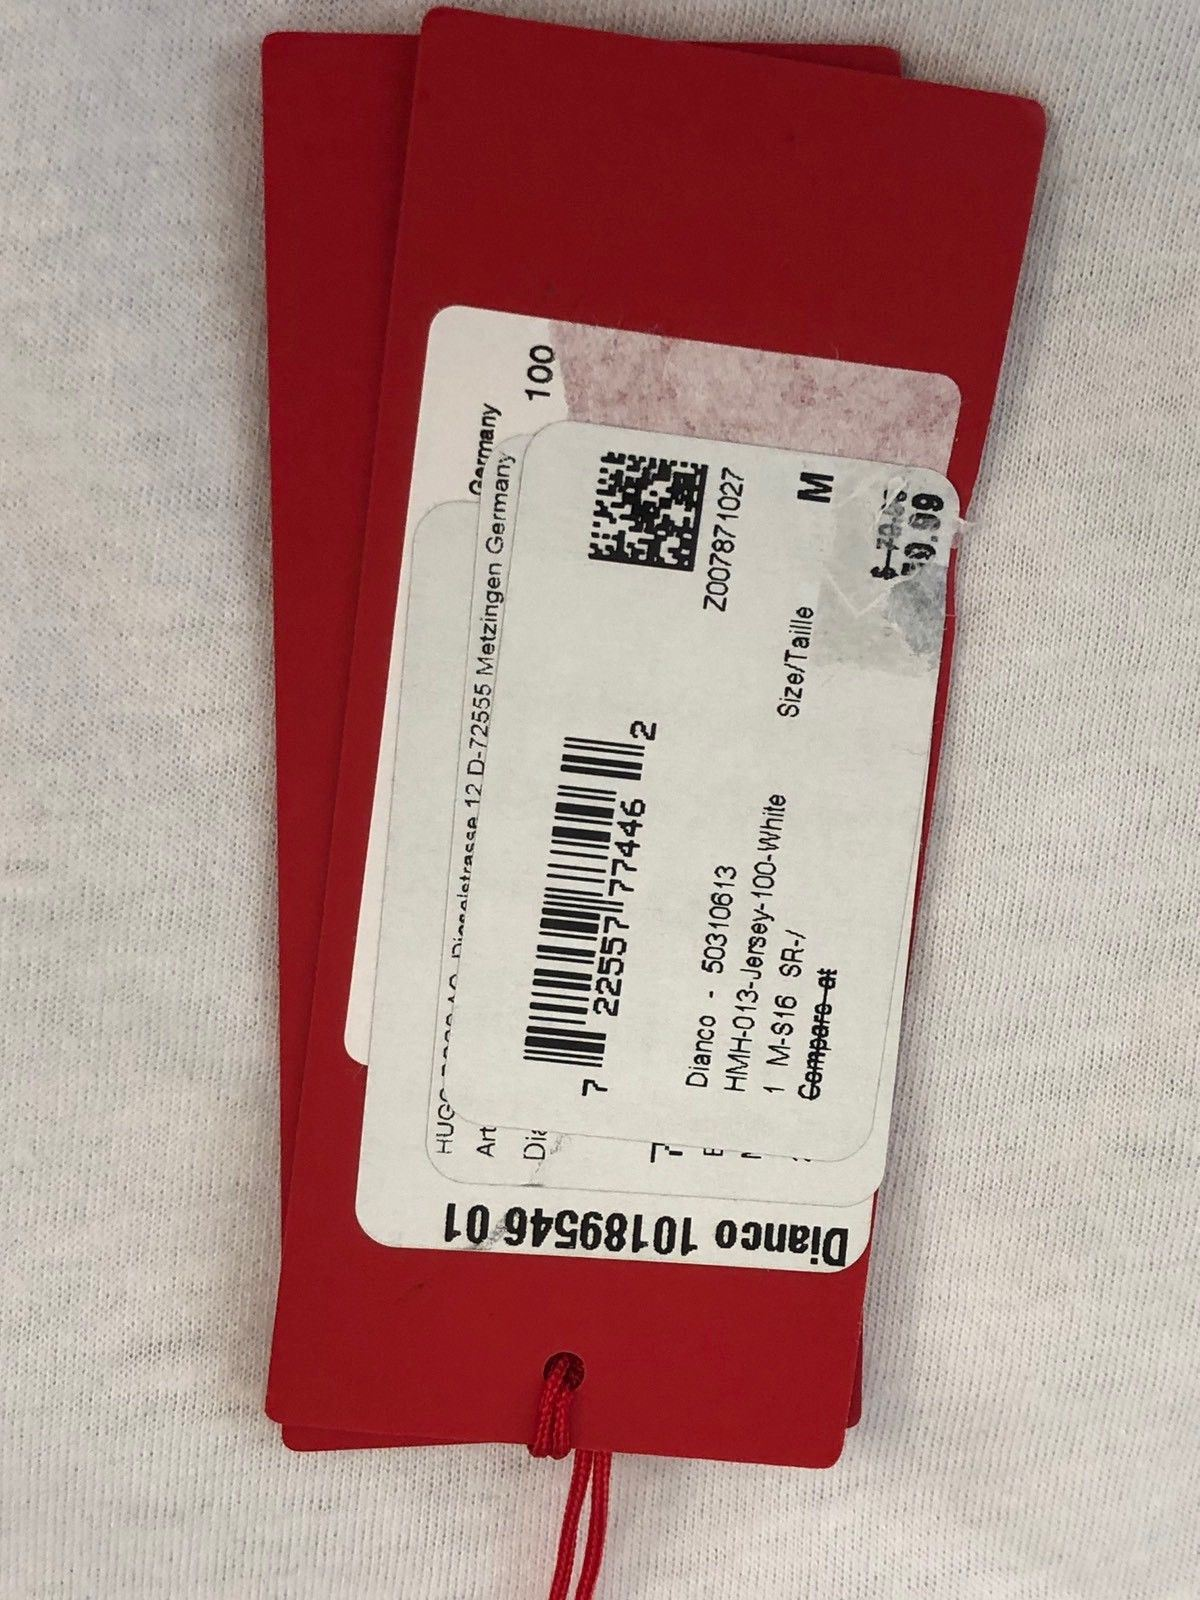 NWT $79.95 BOSS Hugo Boss Dianco Red Label Short Sleeve T-Shirt M White - BAYSUPERSTORE